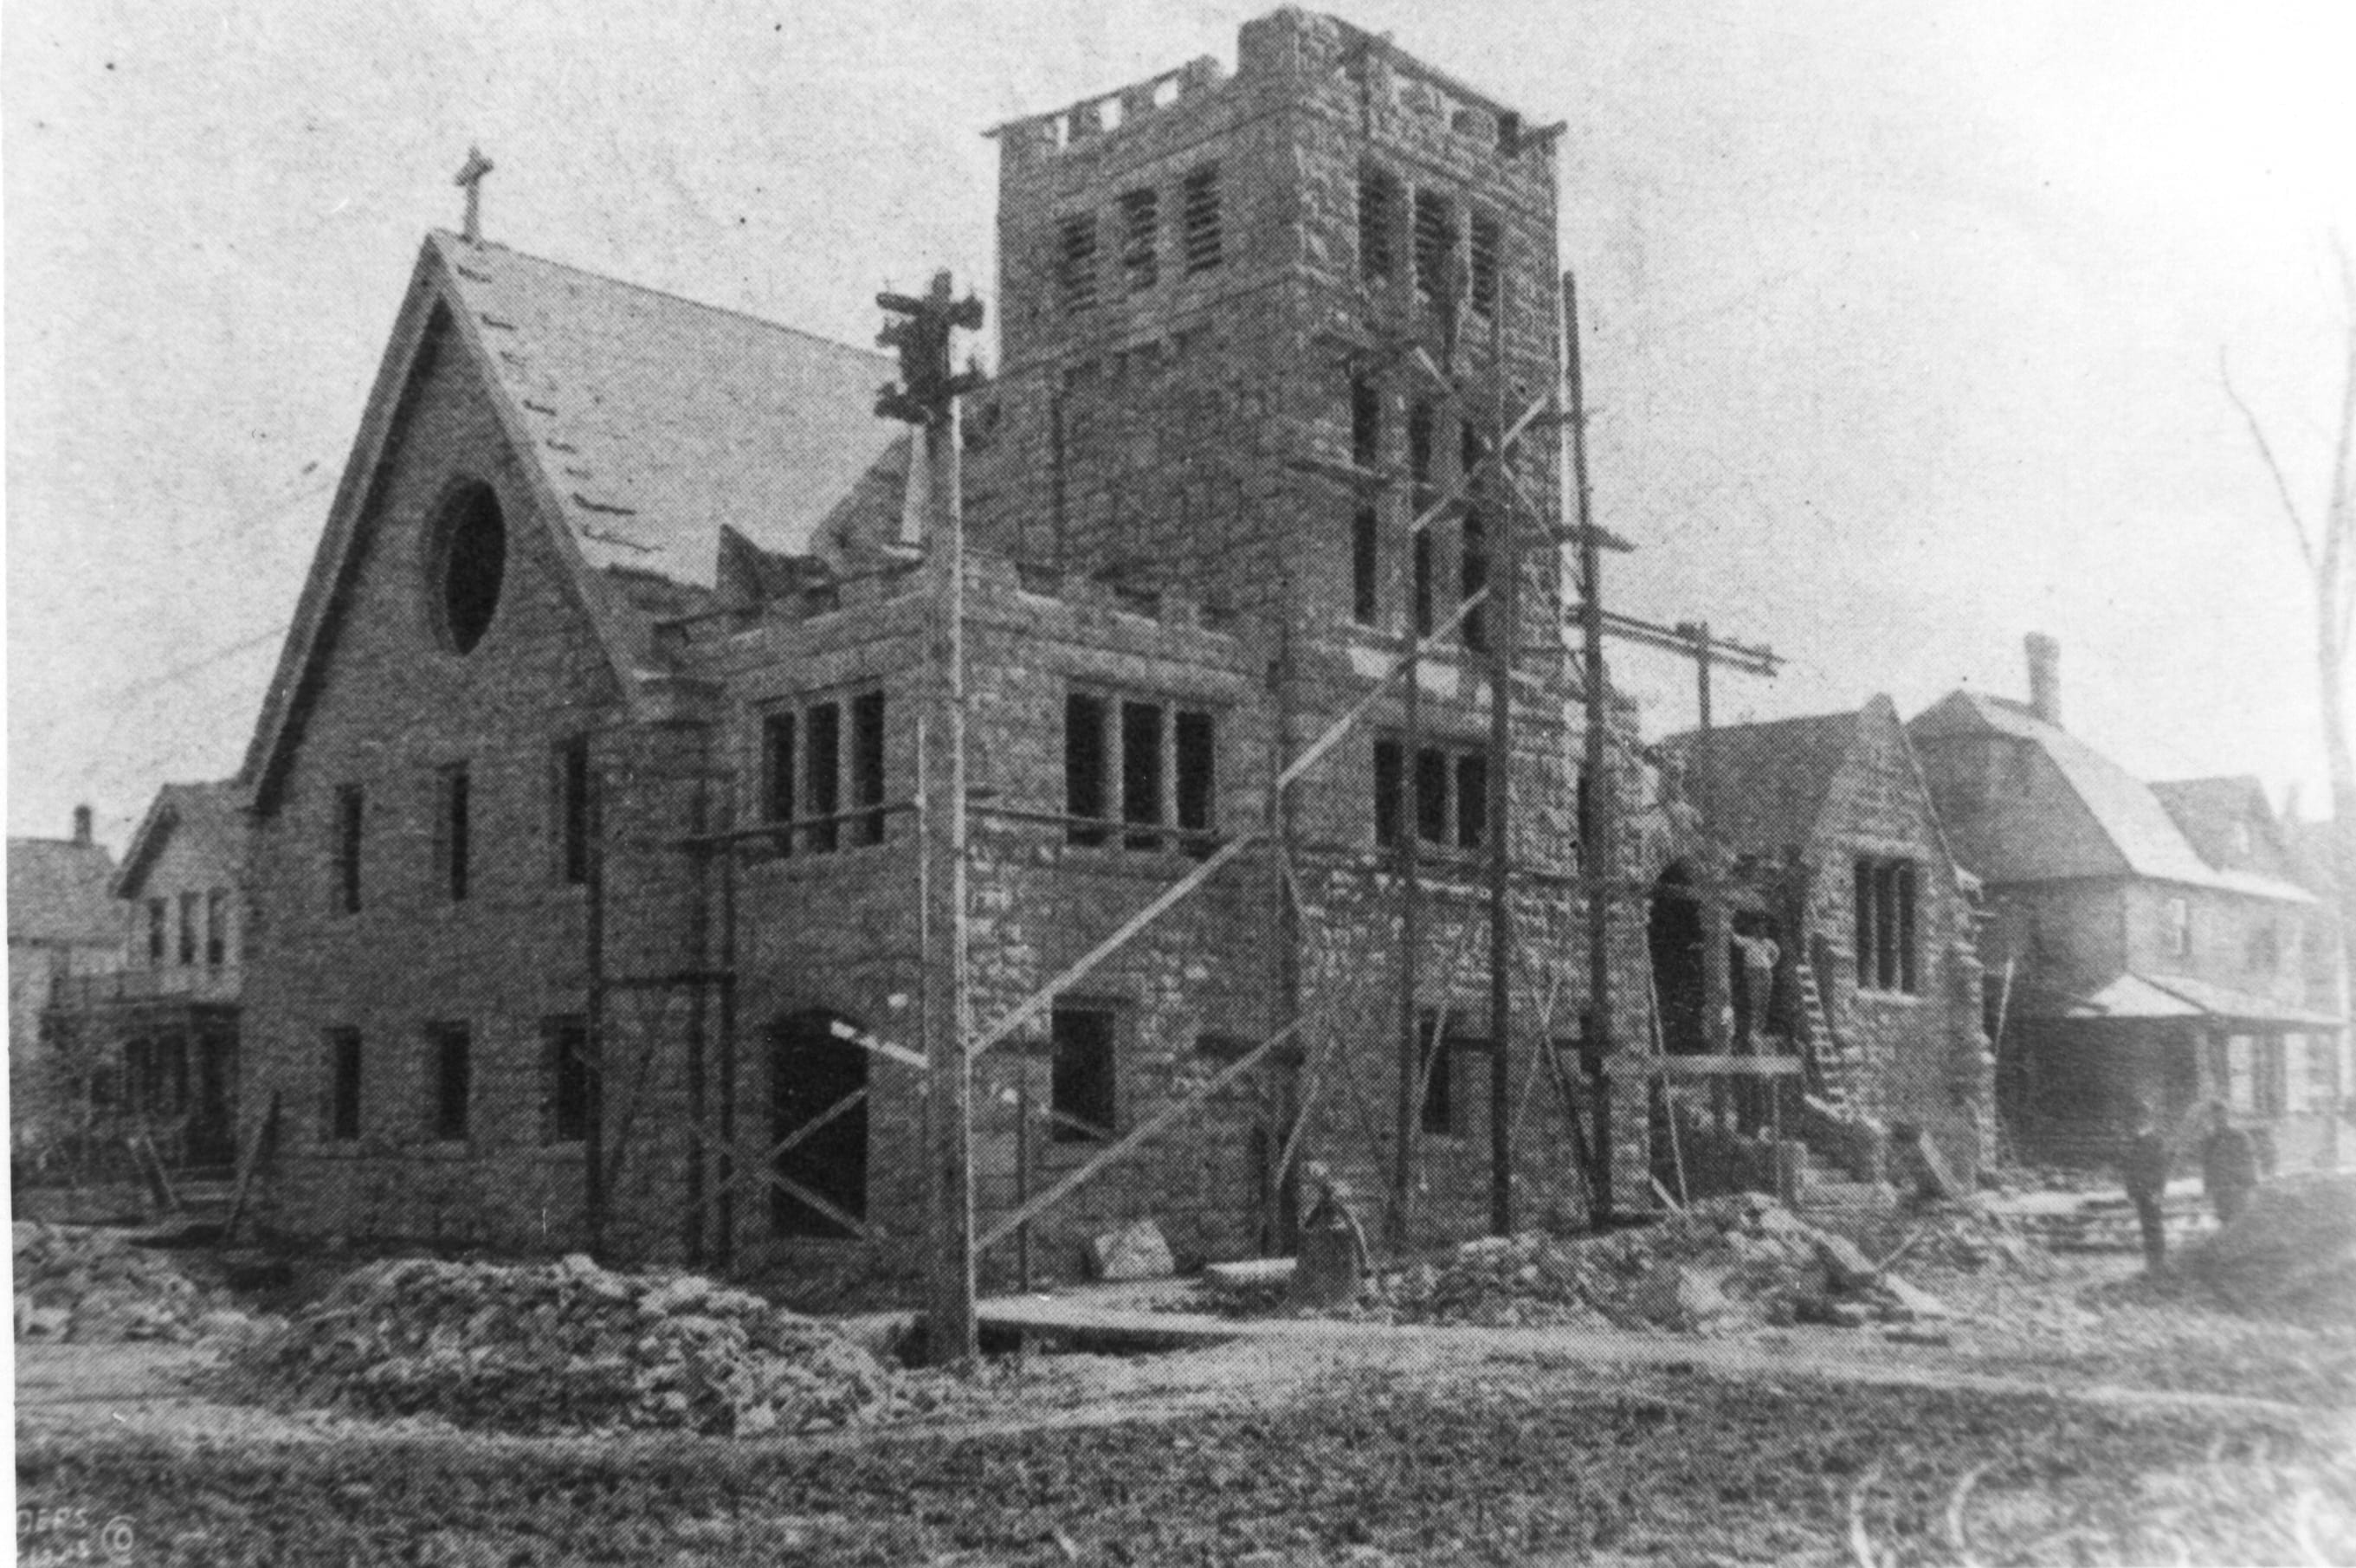 1904 – St. Paul's Episcopal Church